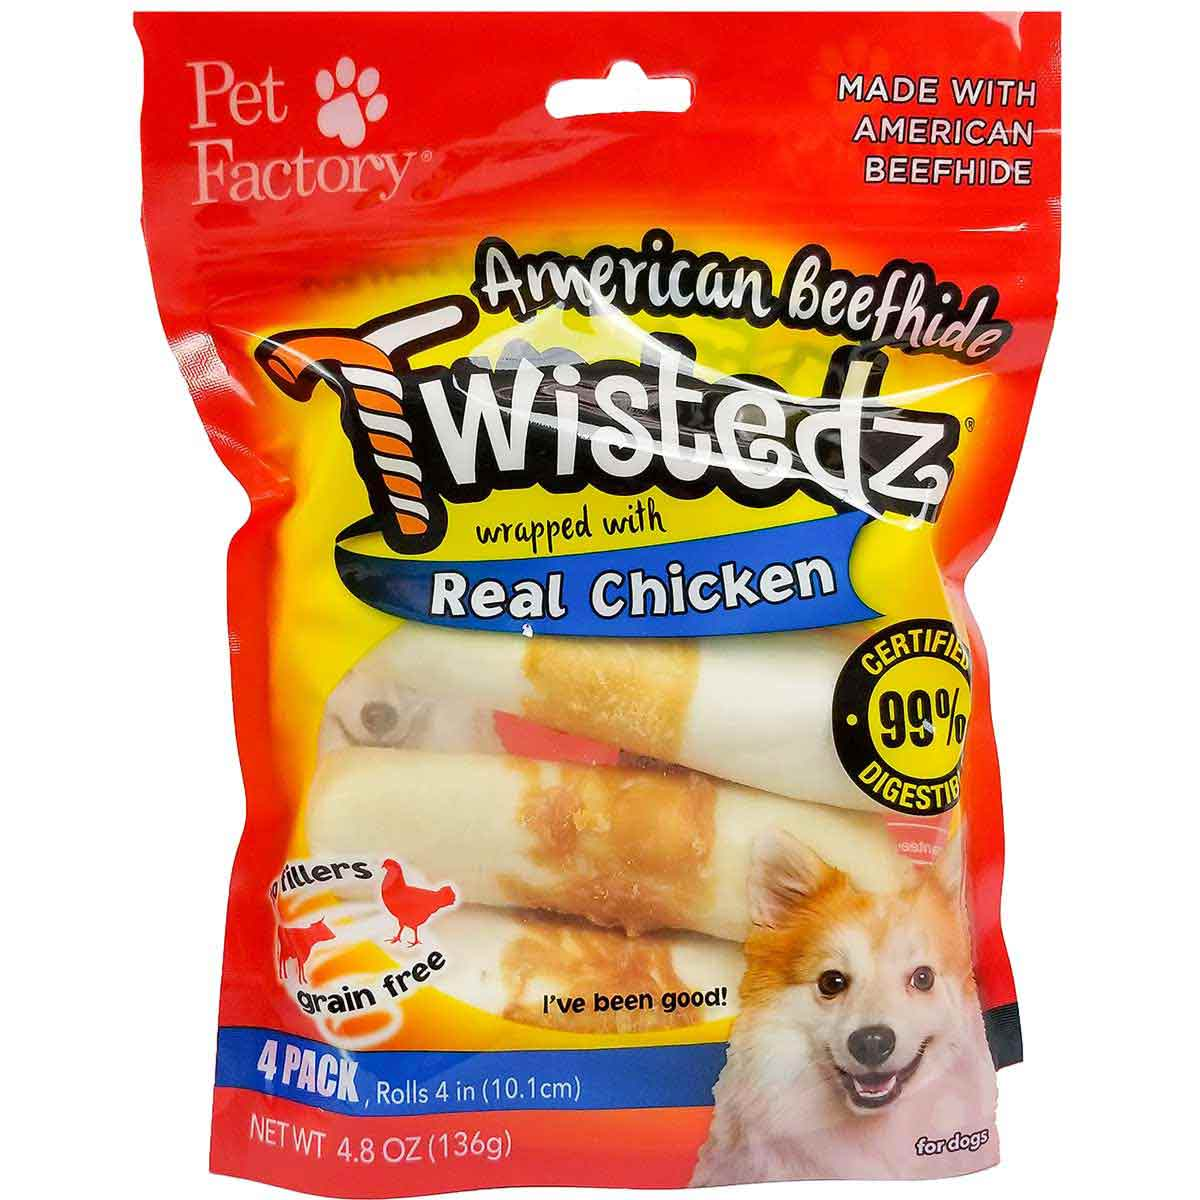 Pet Factory Twistedz Chicken 4-4.5 inch Rawhide Rolls Dog Treats 4 Pack